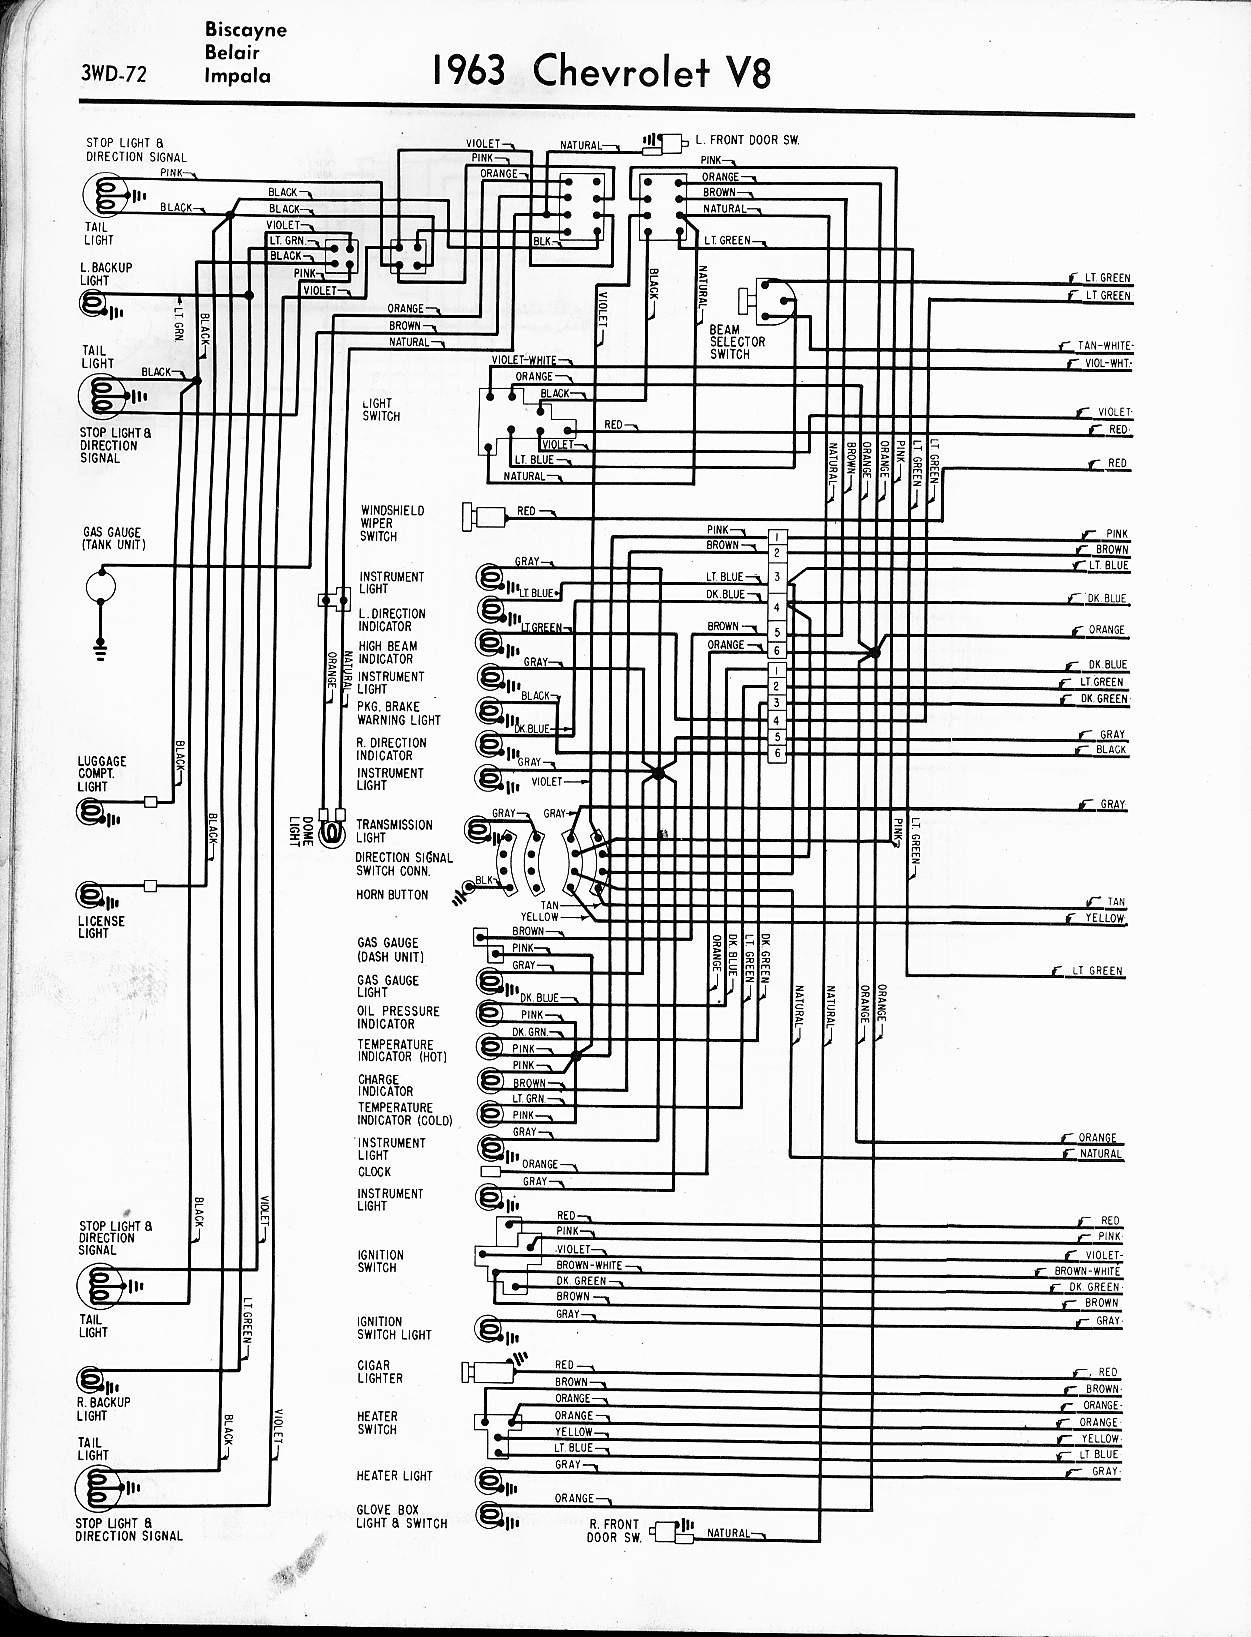 1964 Impala Tail Light Wiring Diagram 2007 Gmc 6 0 Wiring Harness Diagram Coded 03 2020ok Jiwa Jeanjaures37 Fr